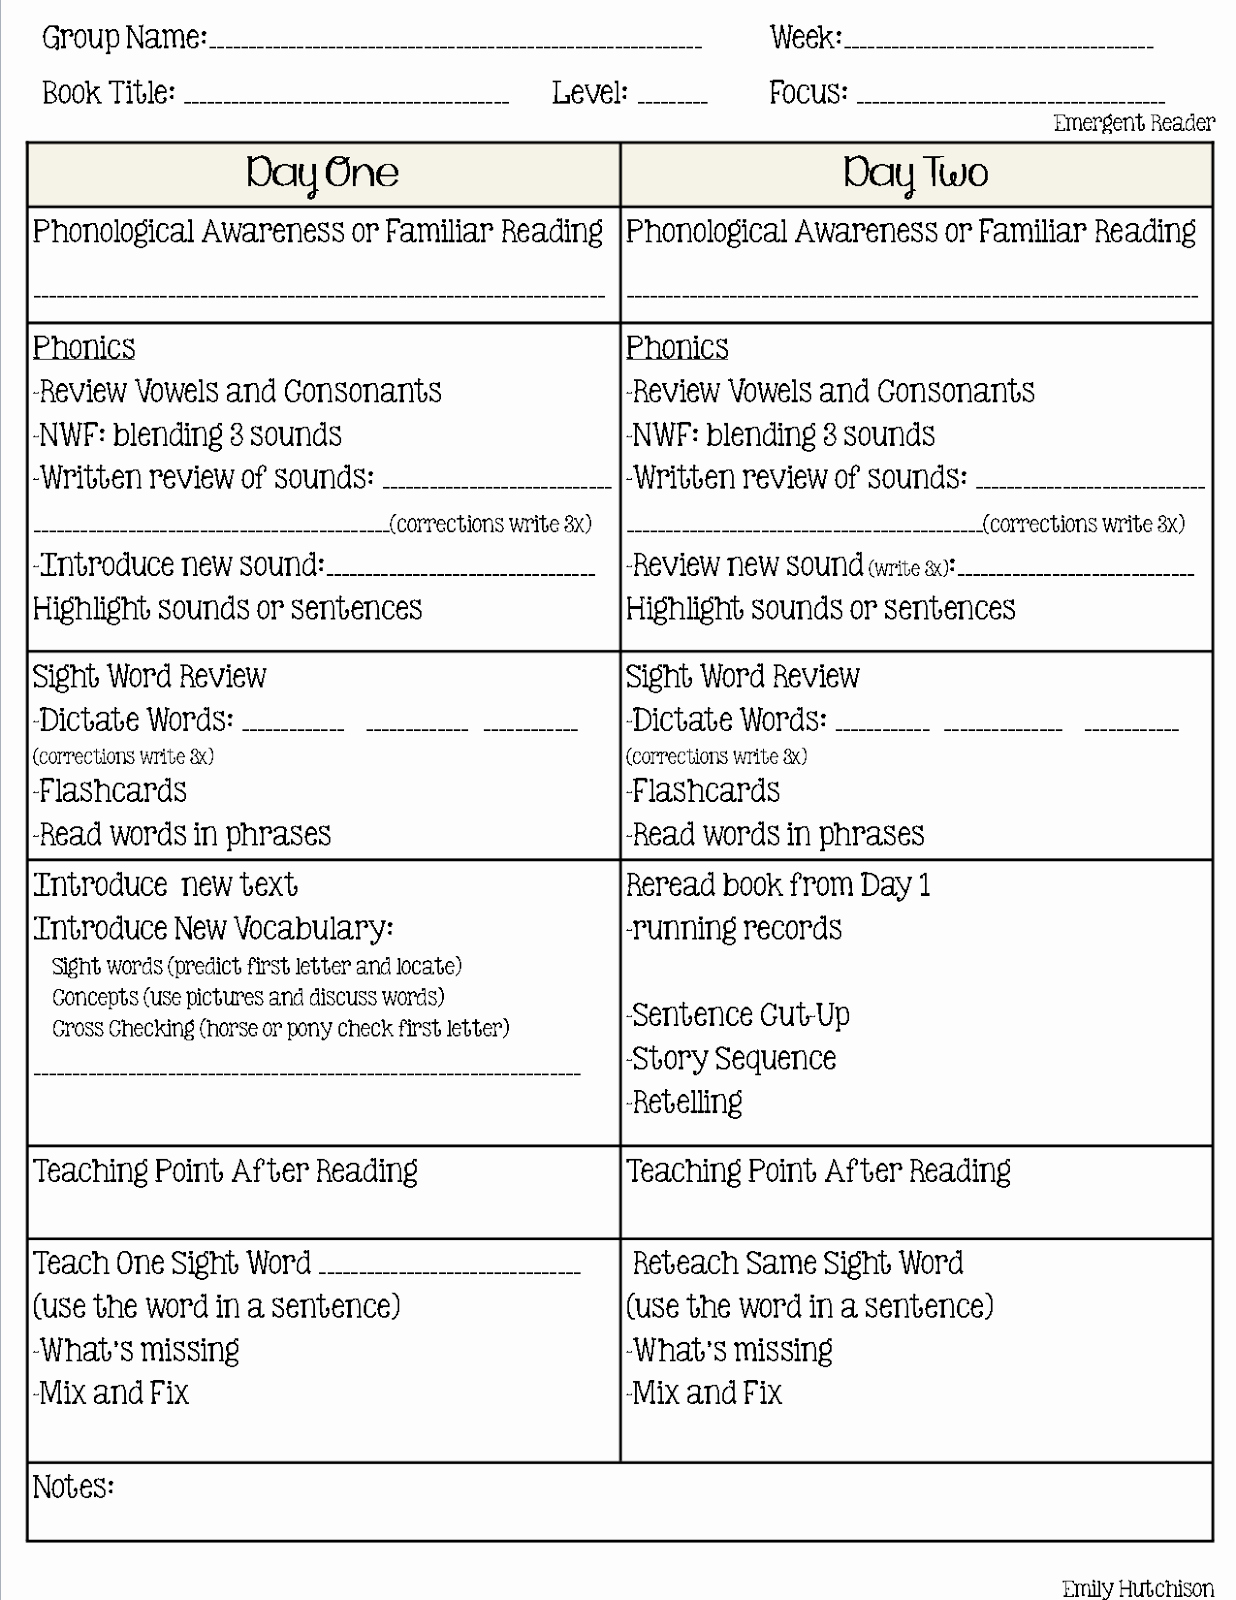 Guided Reading Lesson Plan Template Beautiful Curious Firsties Guided Reading format A Second Look